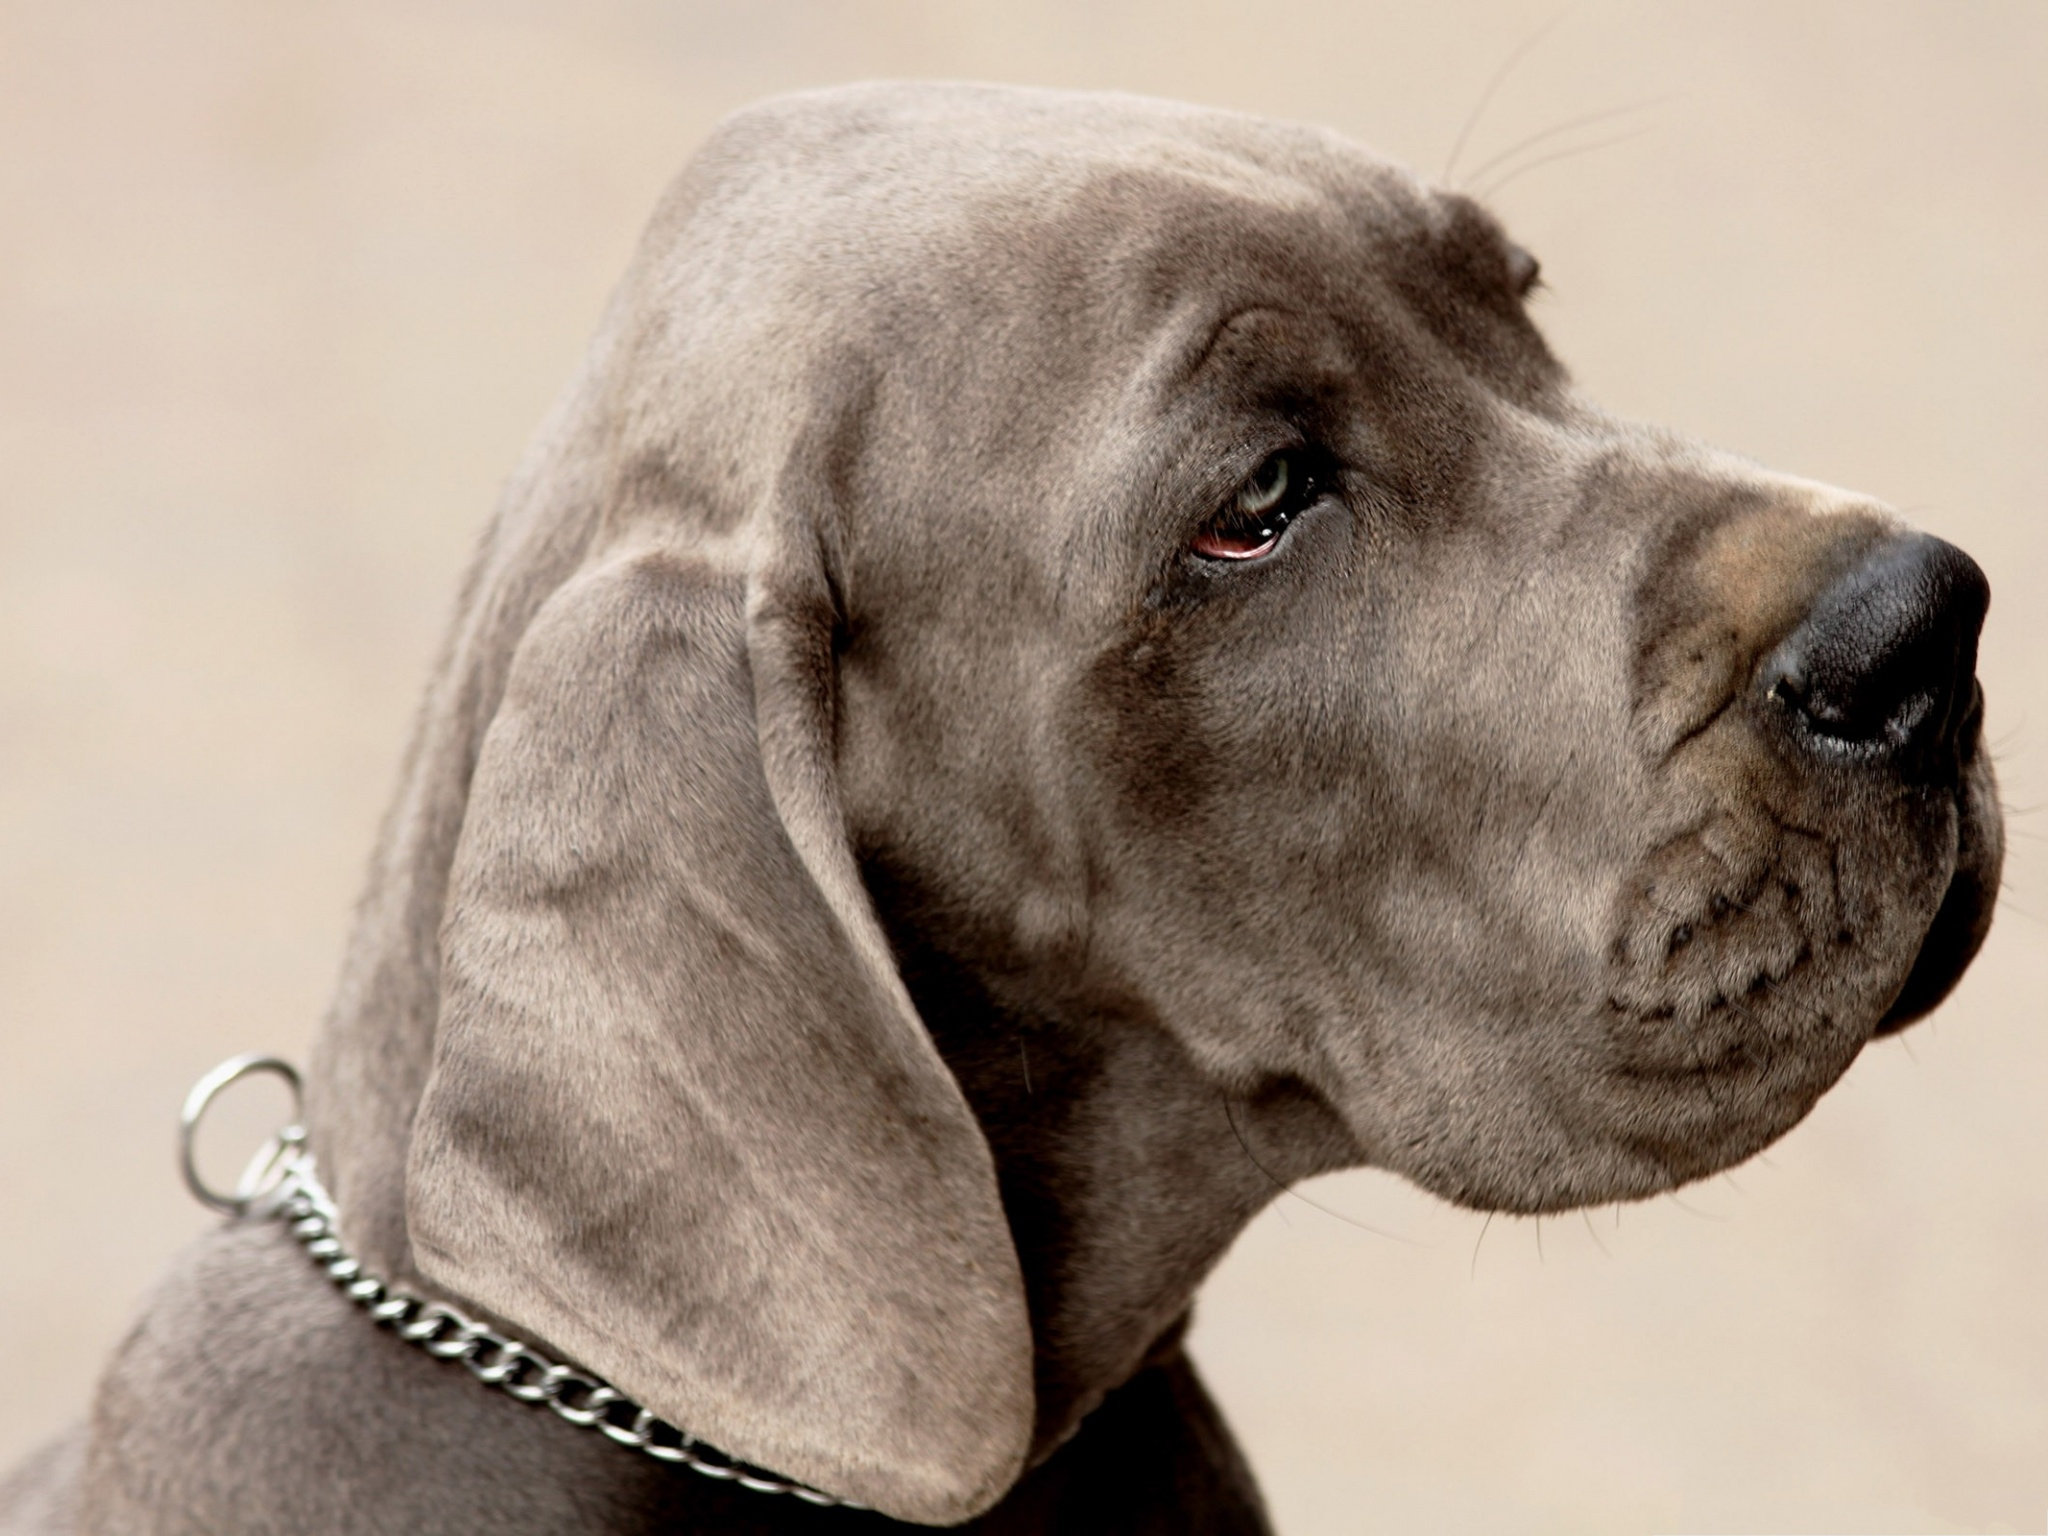 click to free download the wallpaper--Weimaraner Dog Picture, Puppy in Gloomy Look, What is Bothering You? 2048X1536 free wallpaper download